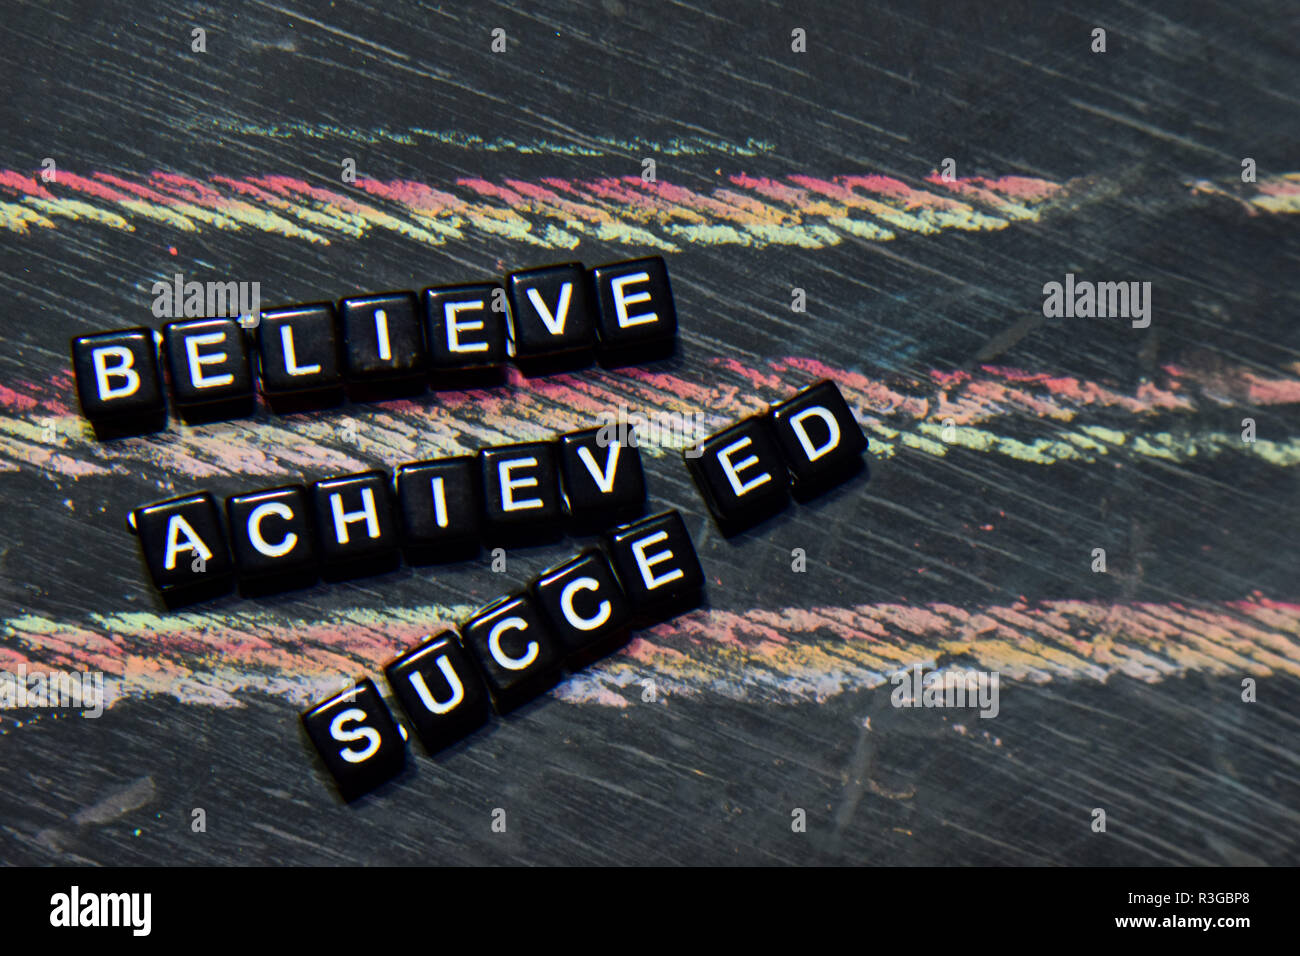 Believe Achieved Succeed on wooden blocks. Cross processed image with blackboard background. Inspiration, education and motivation concepts Stock Photo